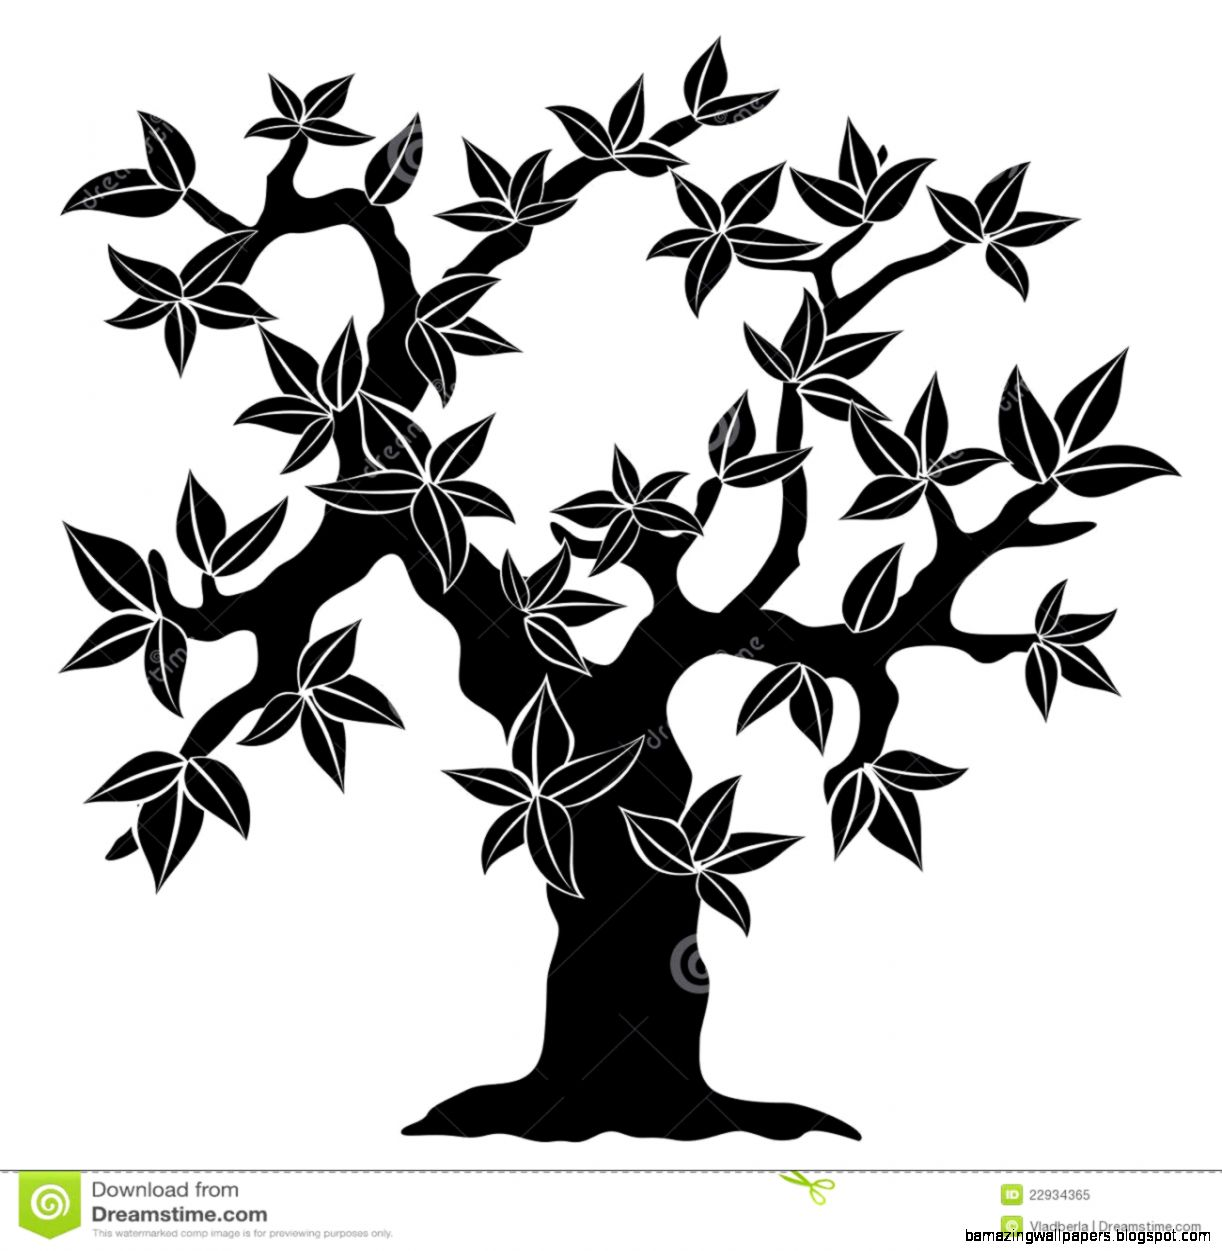 Spring Tree Silhouette Royalty Free Stock Photo   Image 22934365